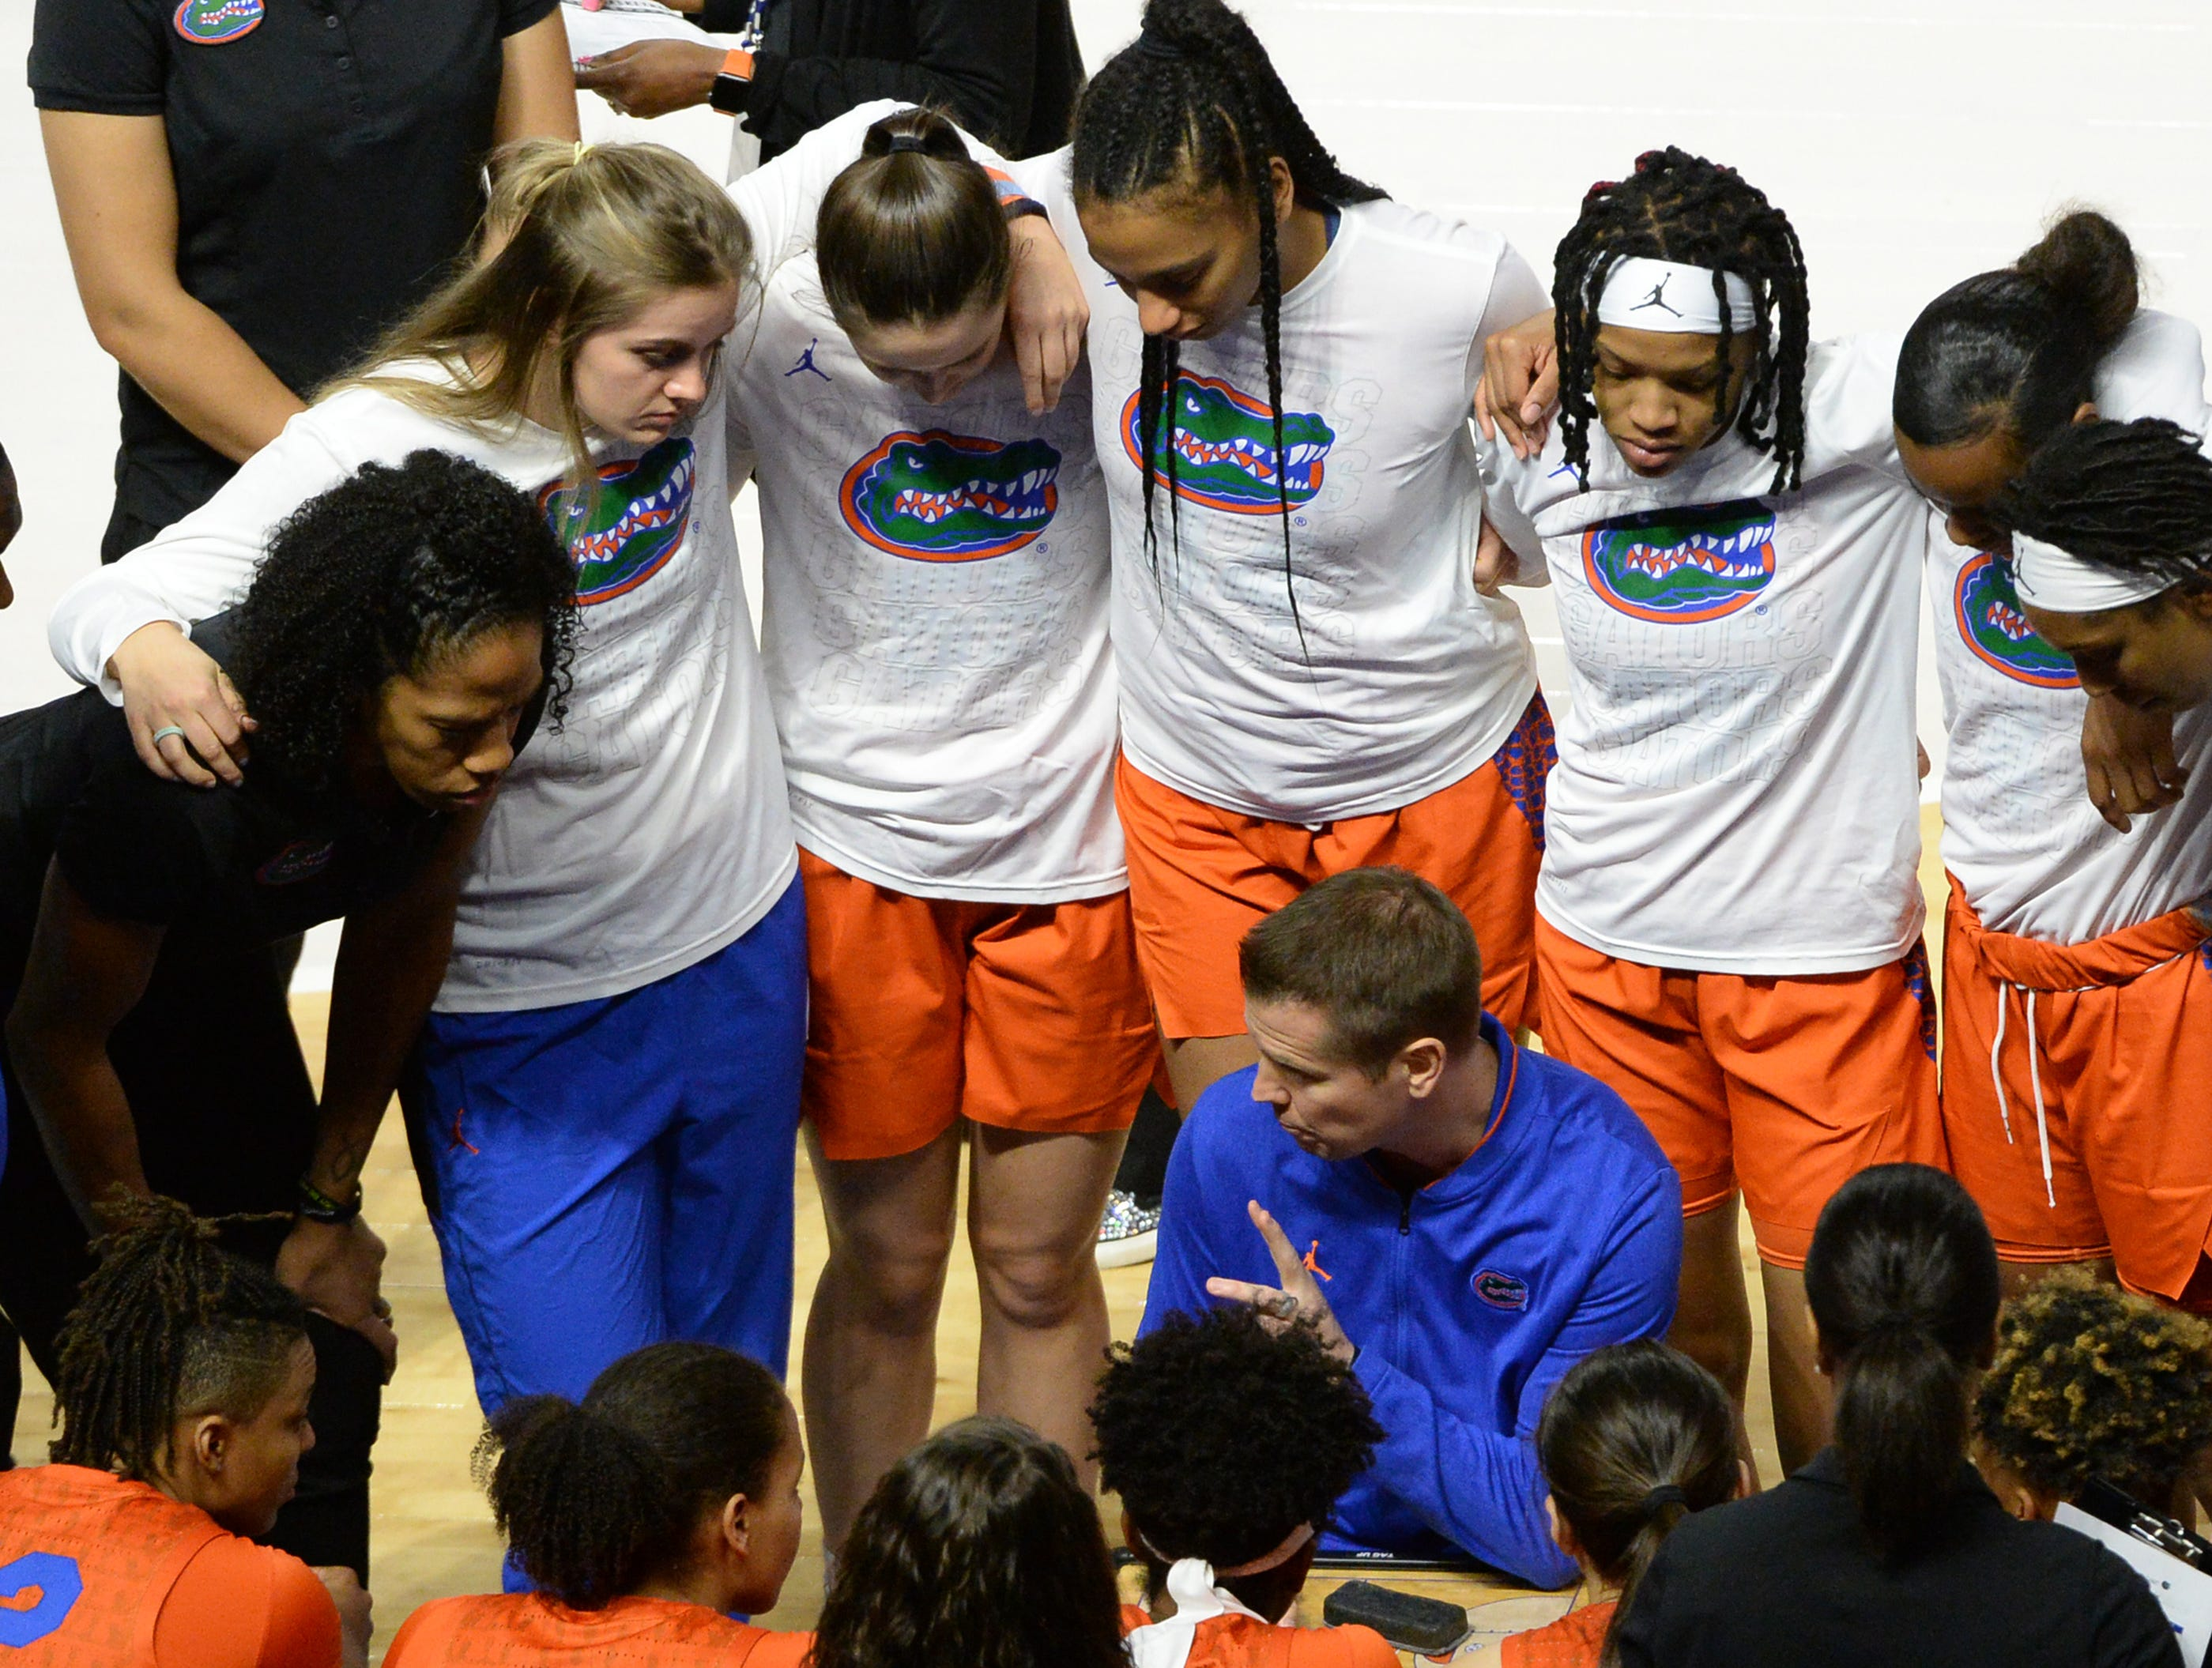 Florida Head Coach Cameron Newbauer talks with players before the Southeastern Conference Women's Tournament game at Bon Secour Wellness Arena in Greenville Wednesday, March 6, 2019.